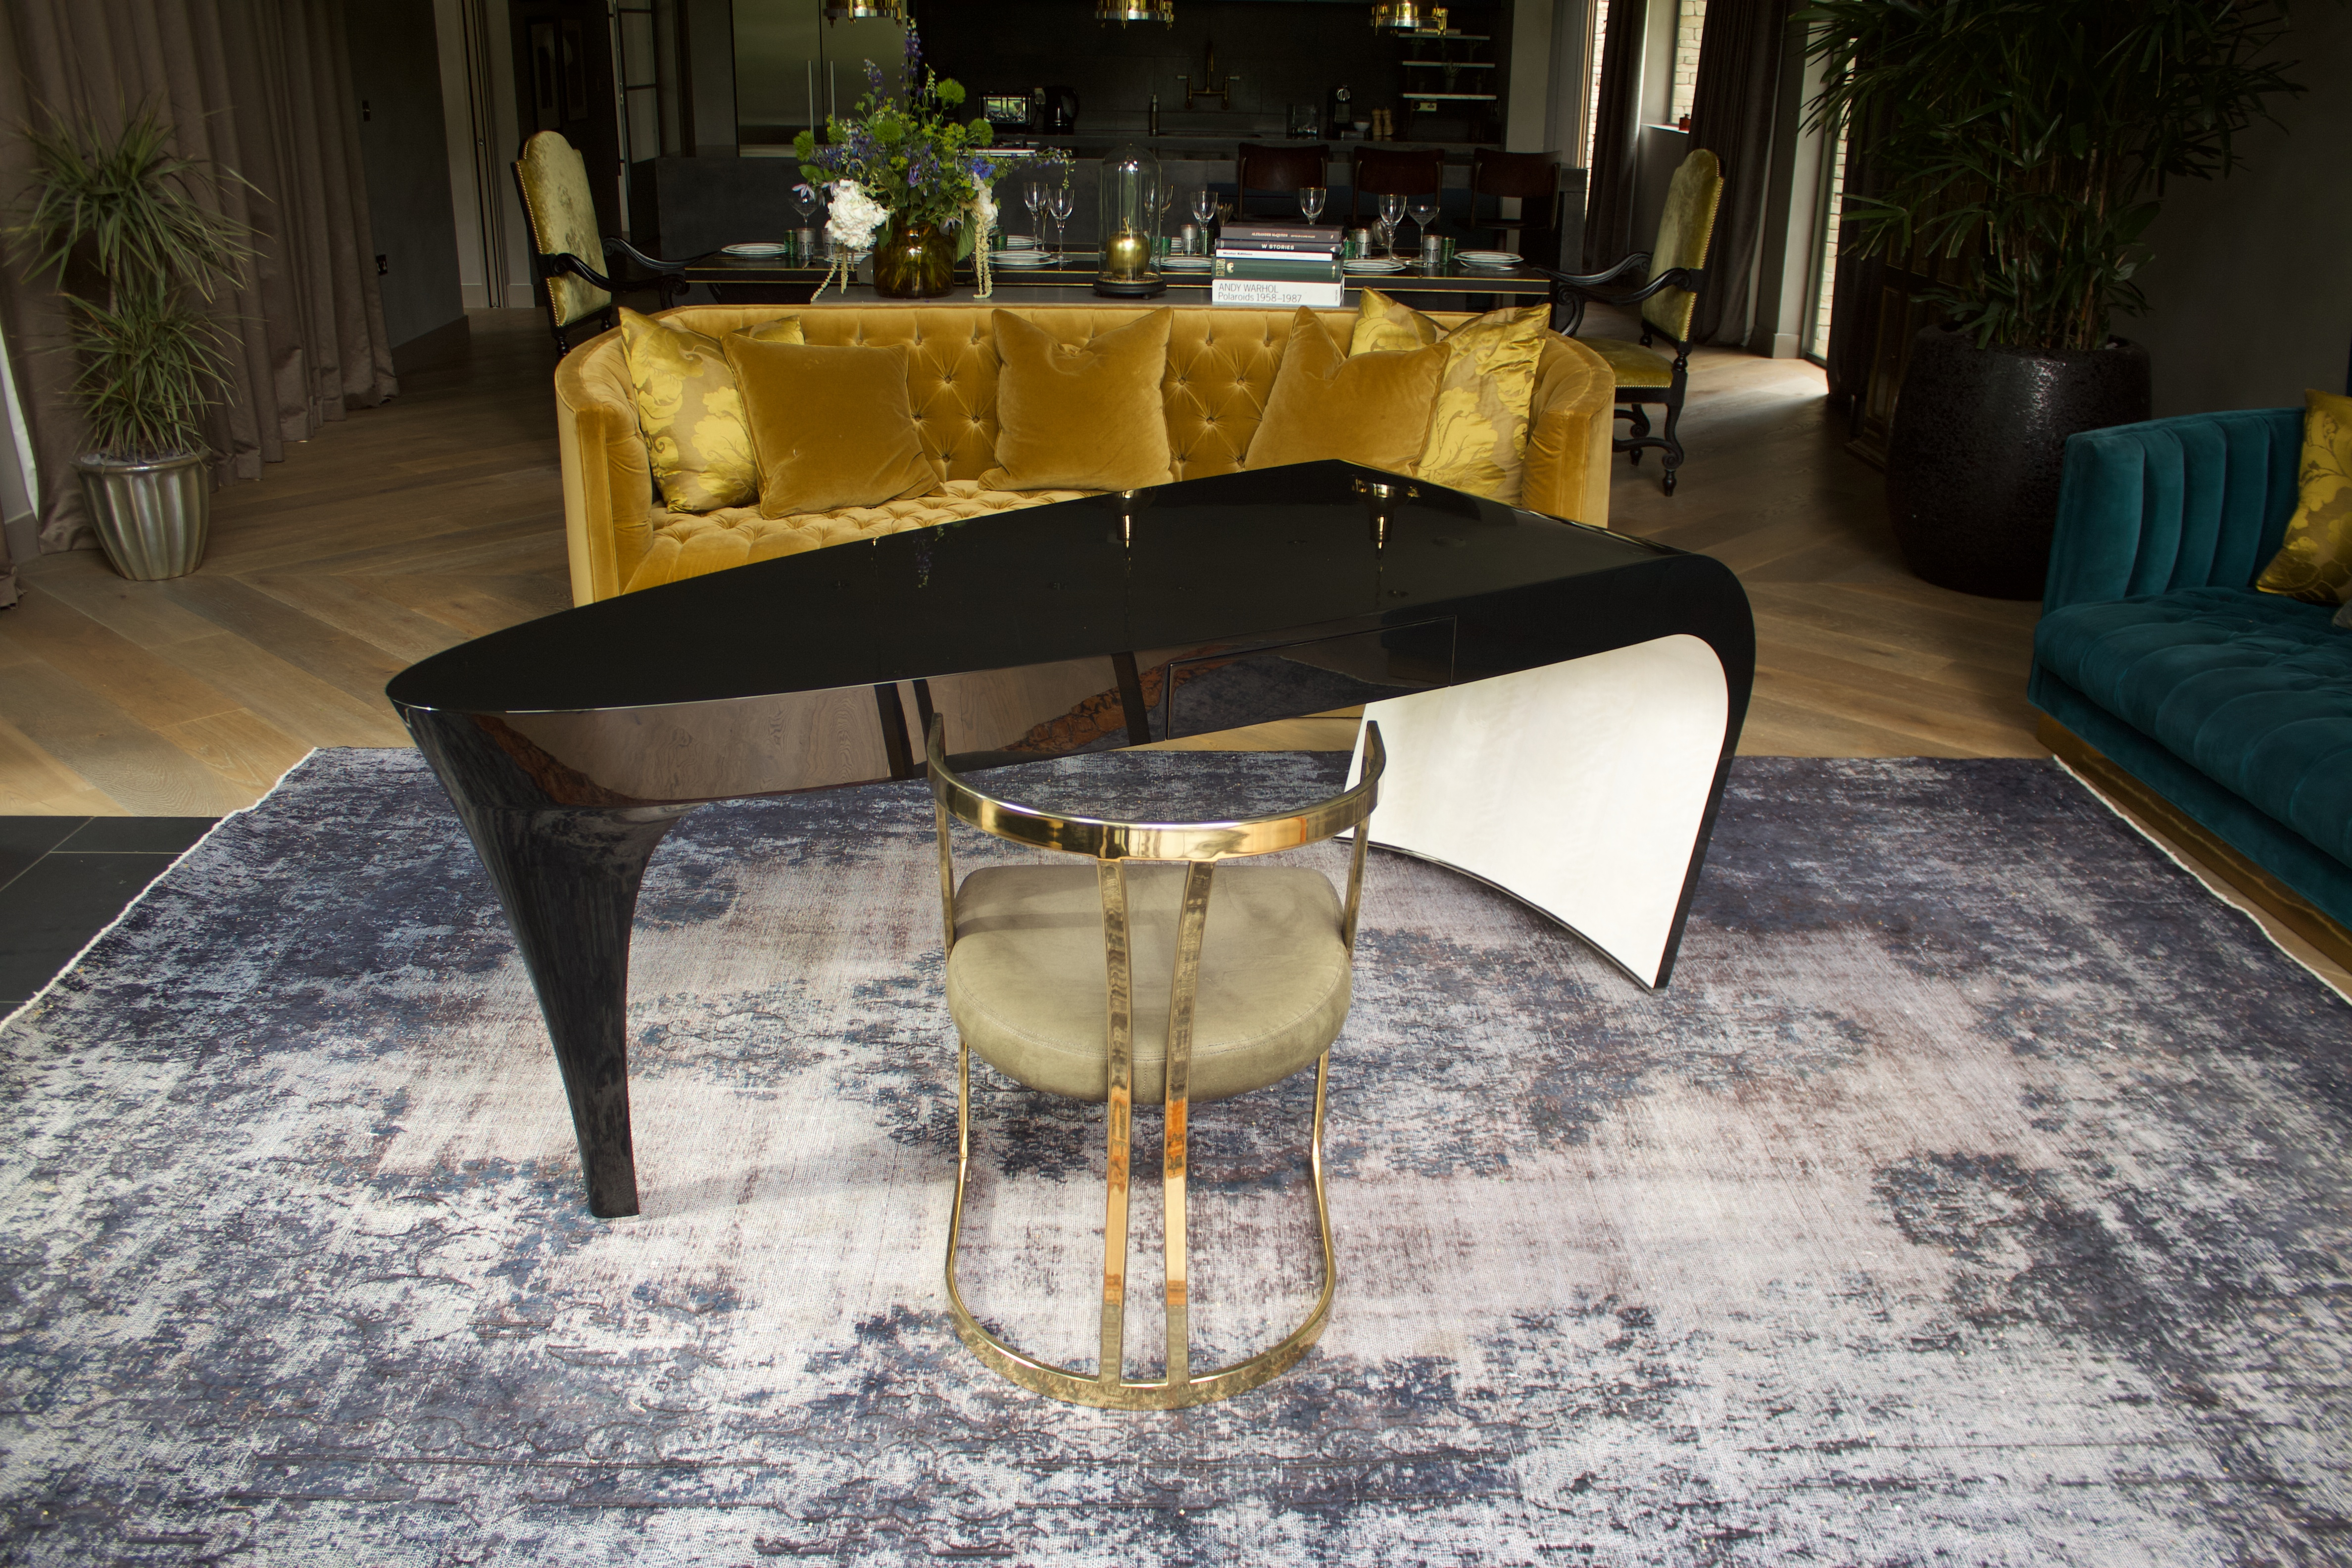 Stiletto dressing table in opulent interiors of the barnhouse lake by Yoo